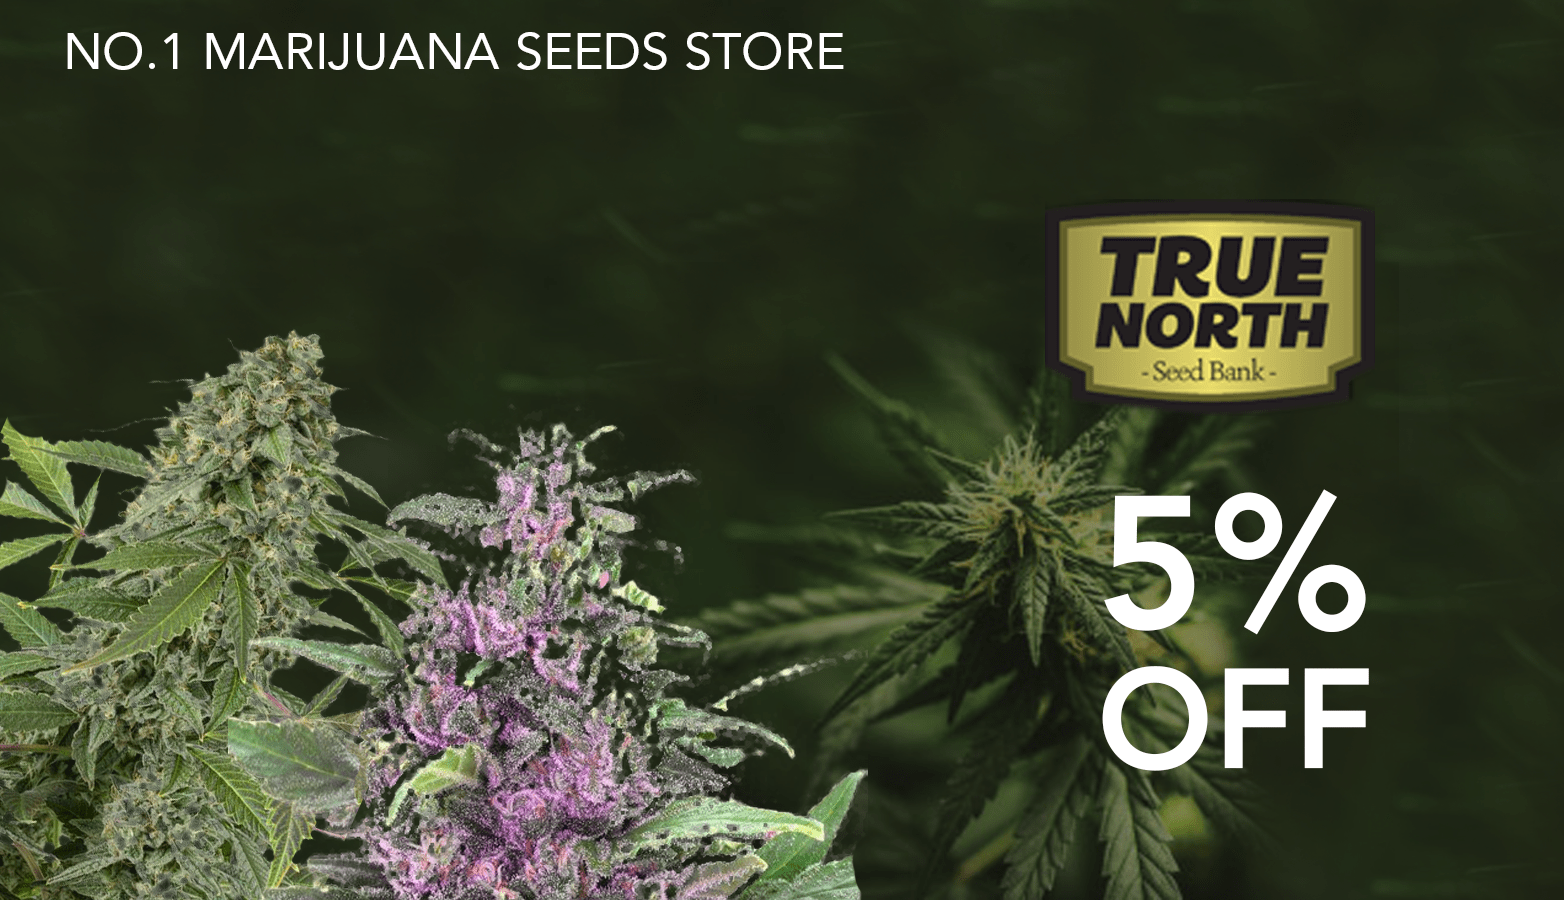 True North Seed Bank Coupon Code Online Discount Save On Cannabis Redesign